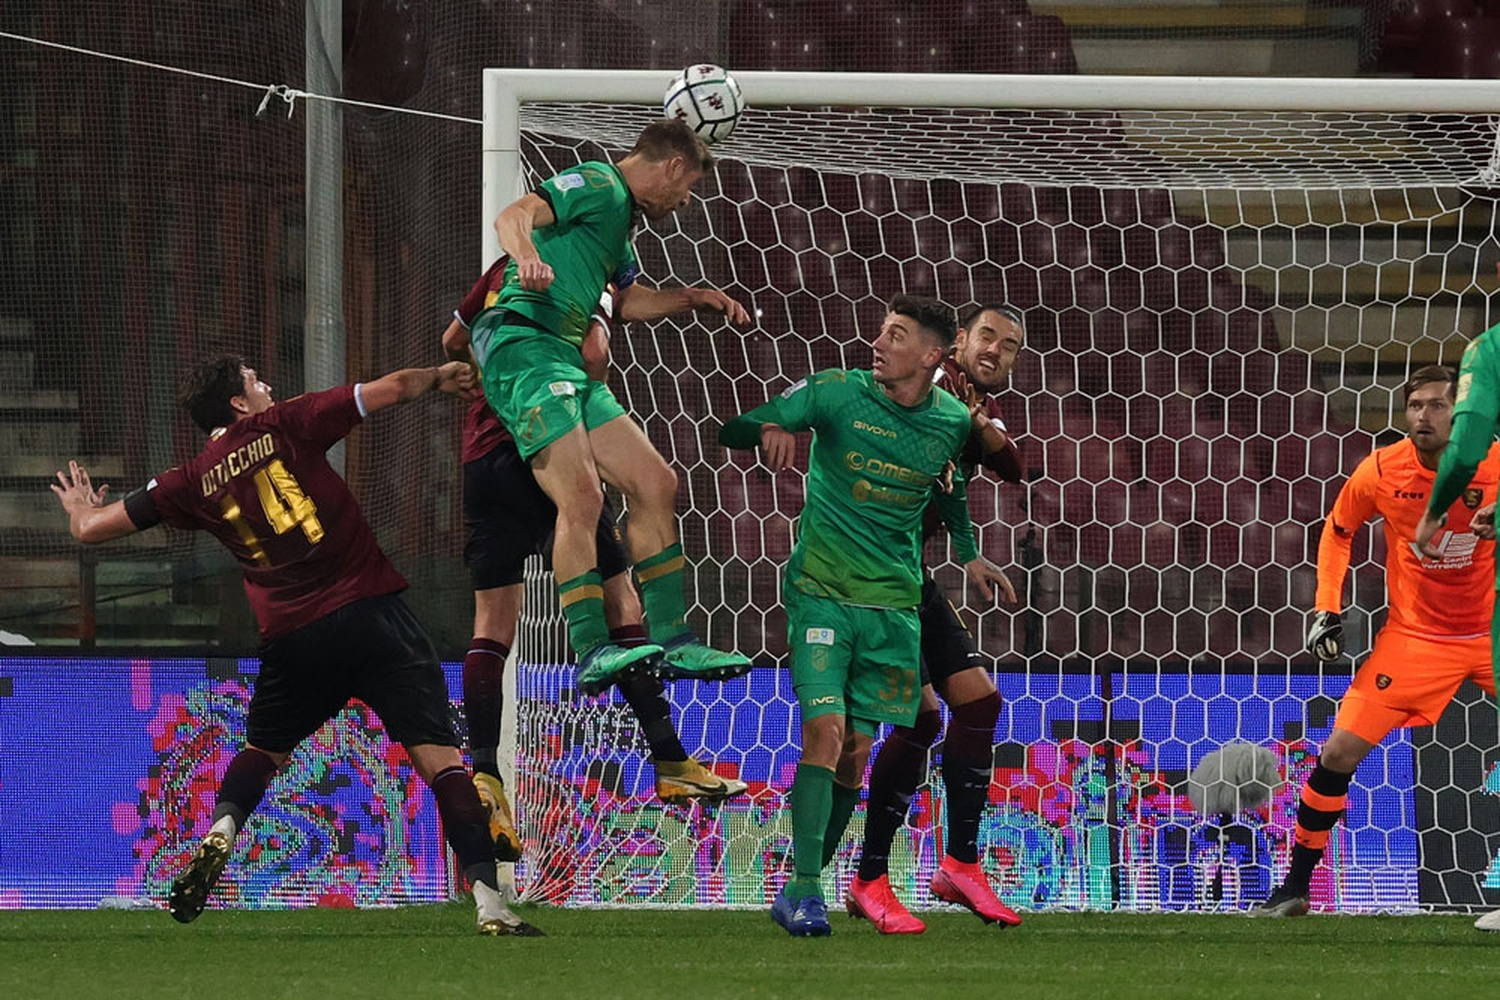 Pordenone vs. Salernitana| Serie B